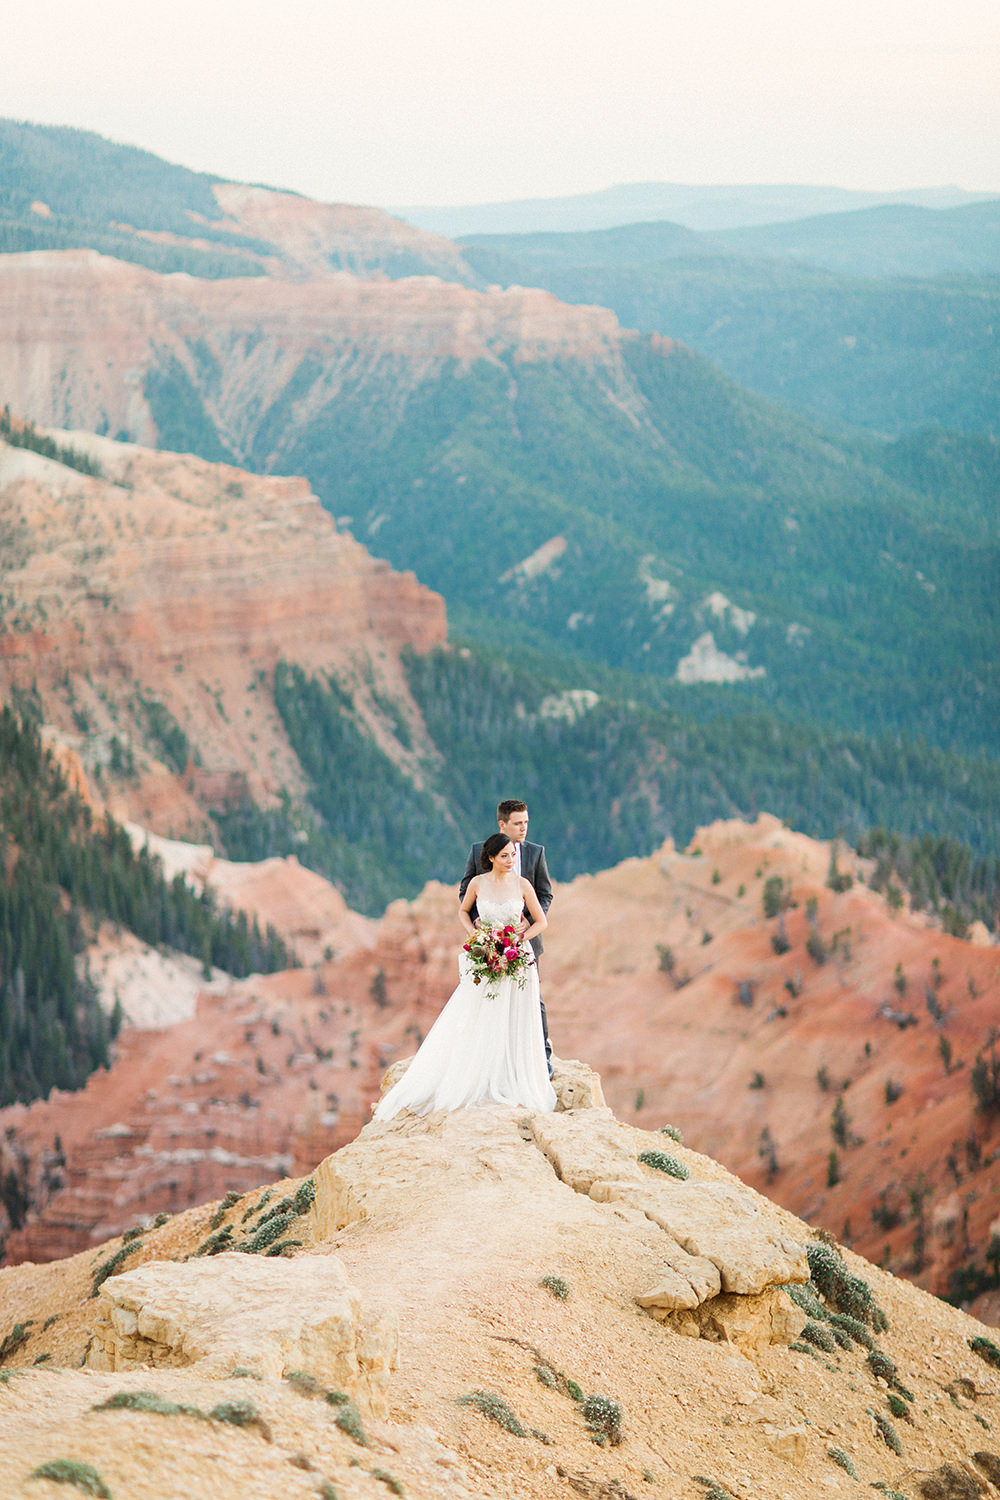 Botanical Wedding Ideas in the Mountains of Southern Utah - photo by Gideon Photography http://ruffledblog.com/botanical-wedding-ideas-in-the-mountains-of-southern-utah